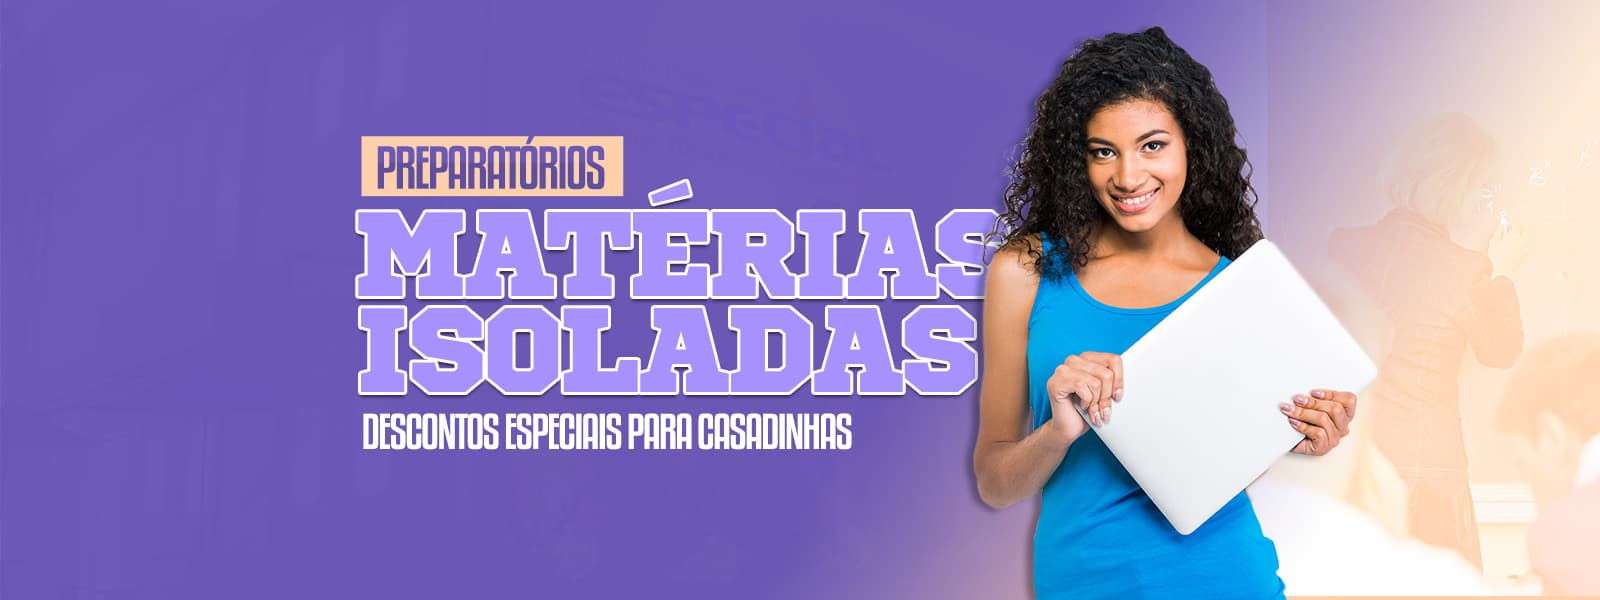 banners-site-2020-isoladas